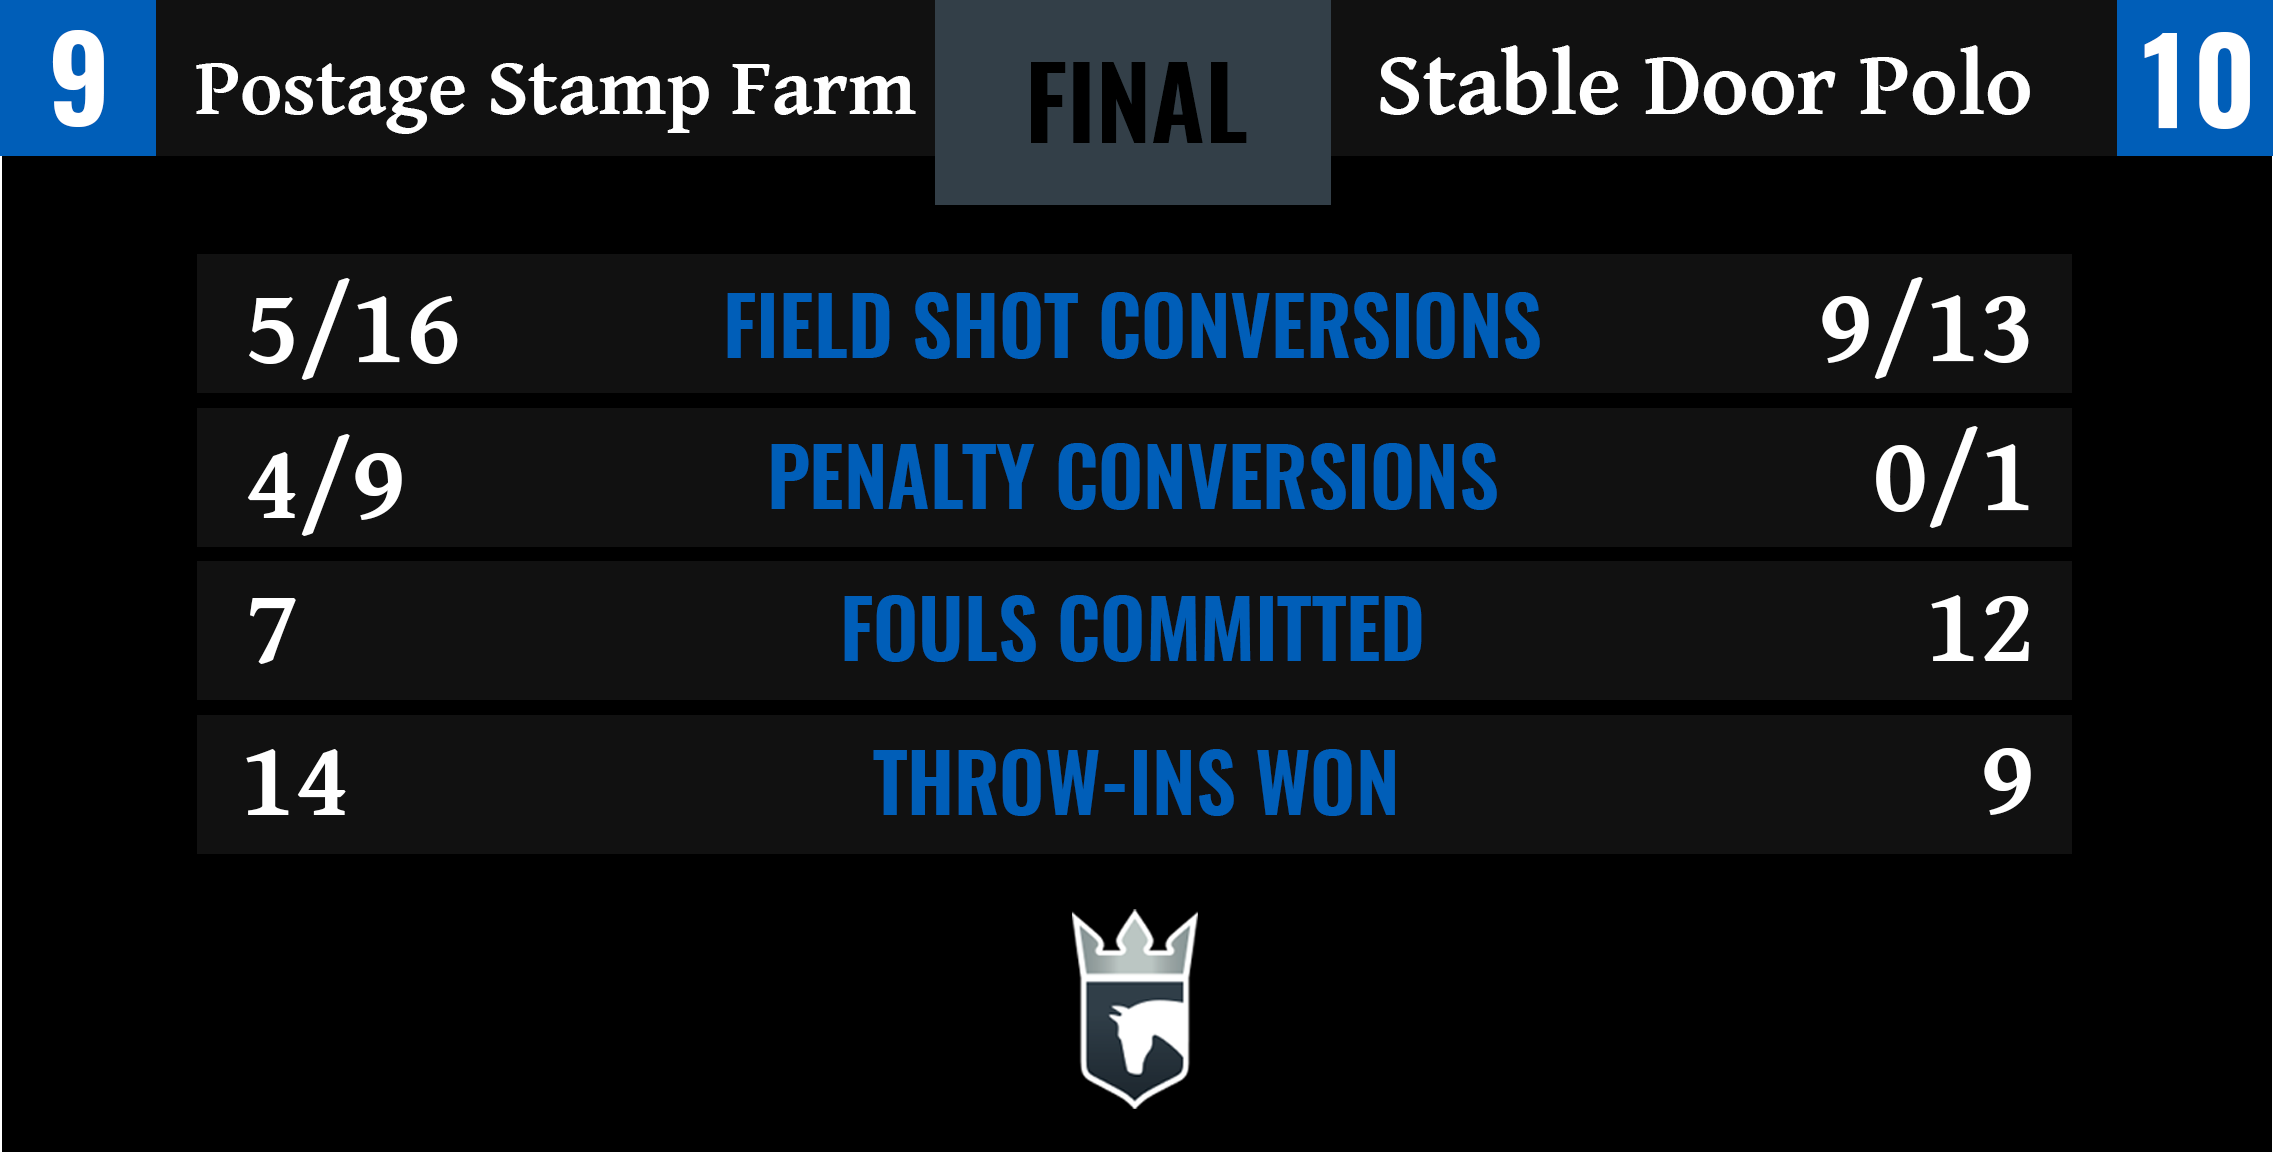 Postage Stamp Farm vs Stable Door Polo Final Stats